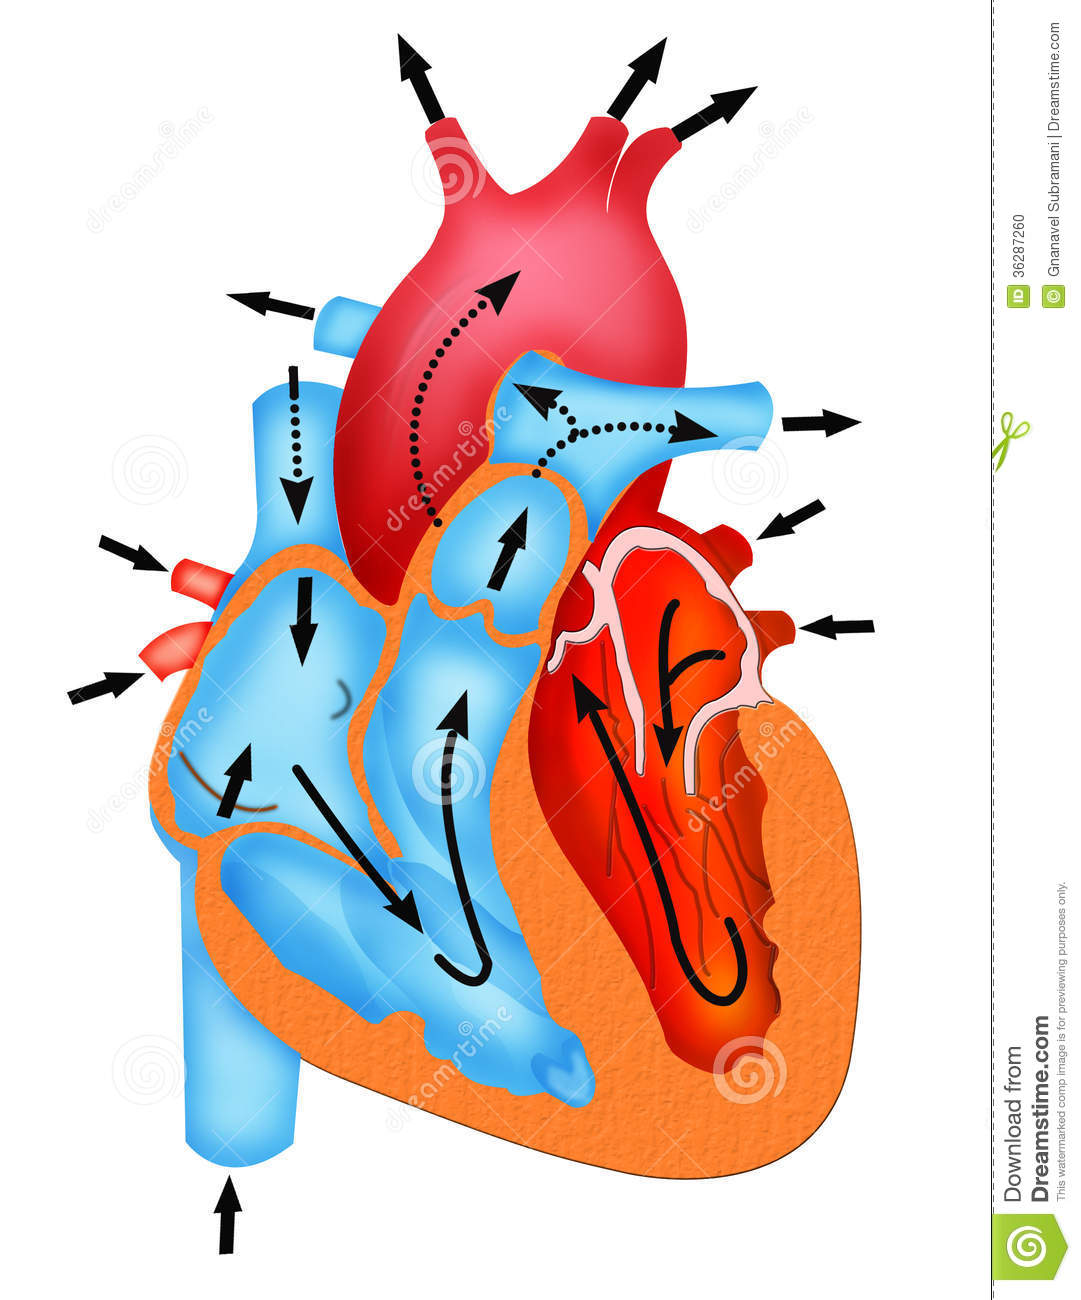 Pathway of blood flow through the heart stock illustration download comp ccuart Choice Image